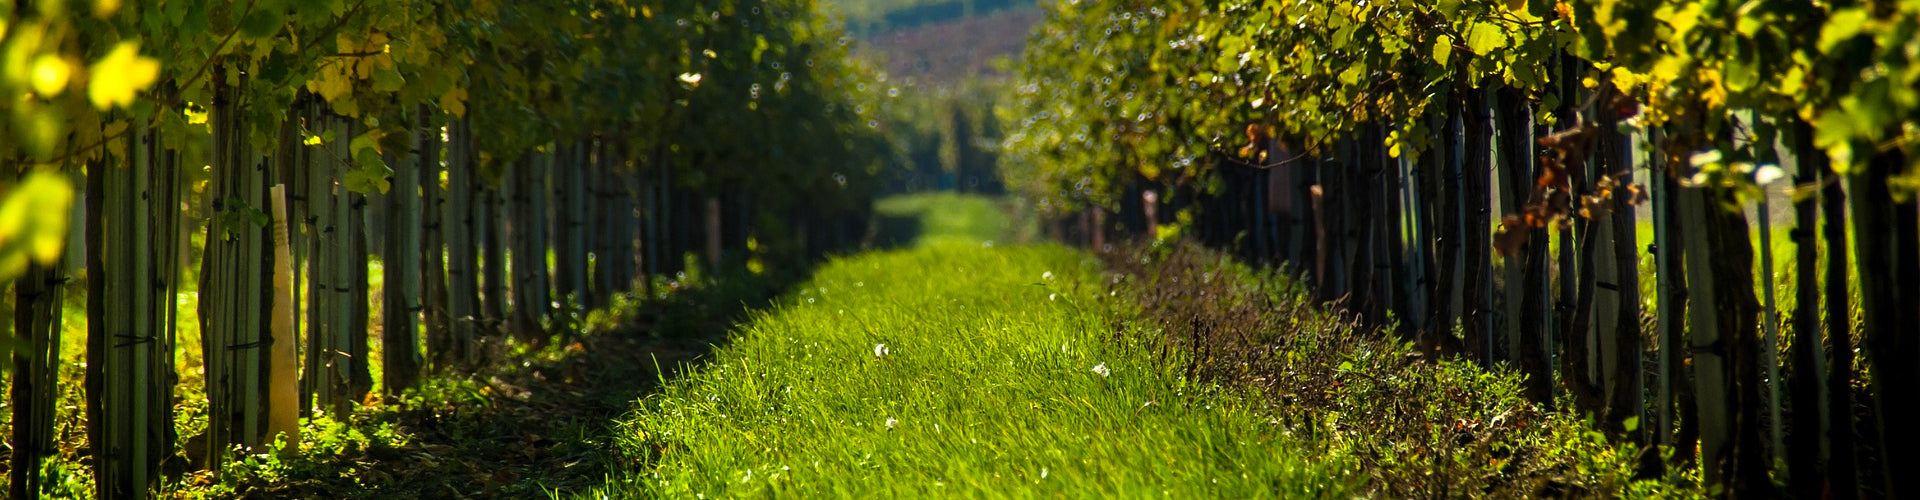 Organic wine vineyard